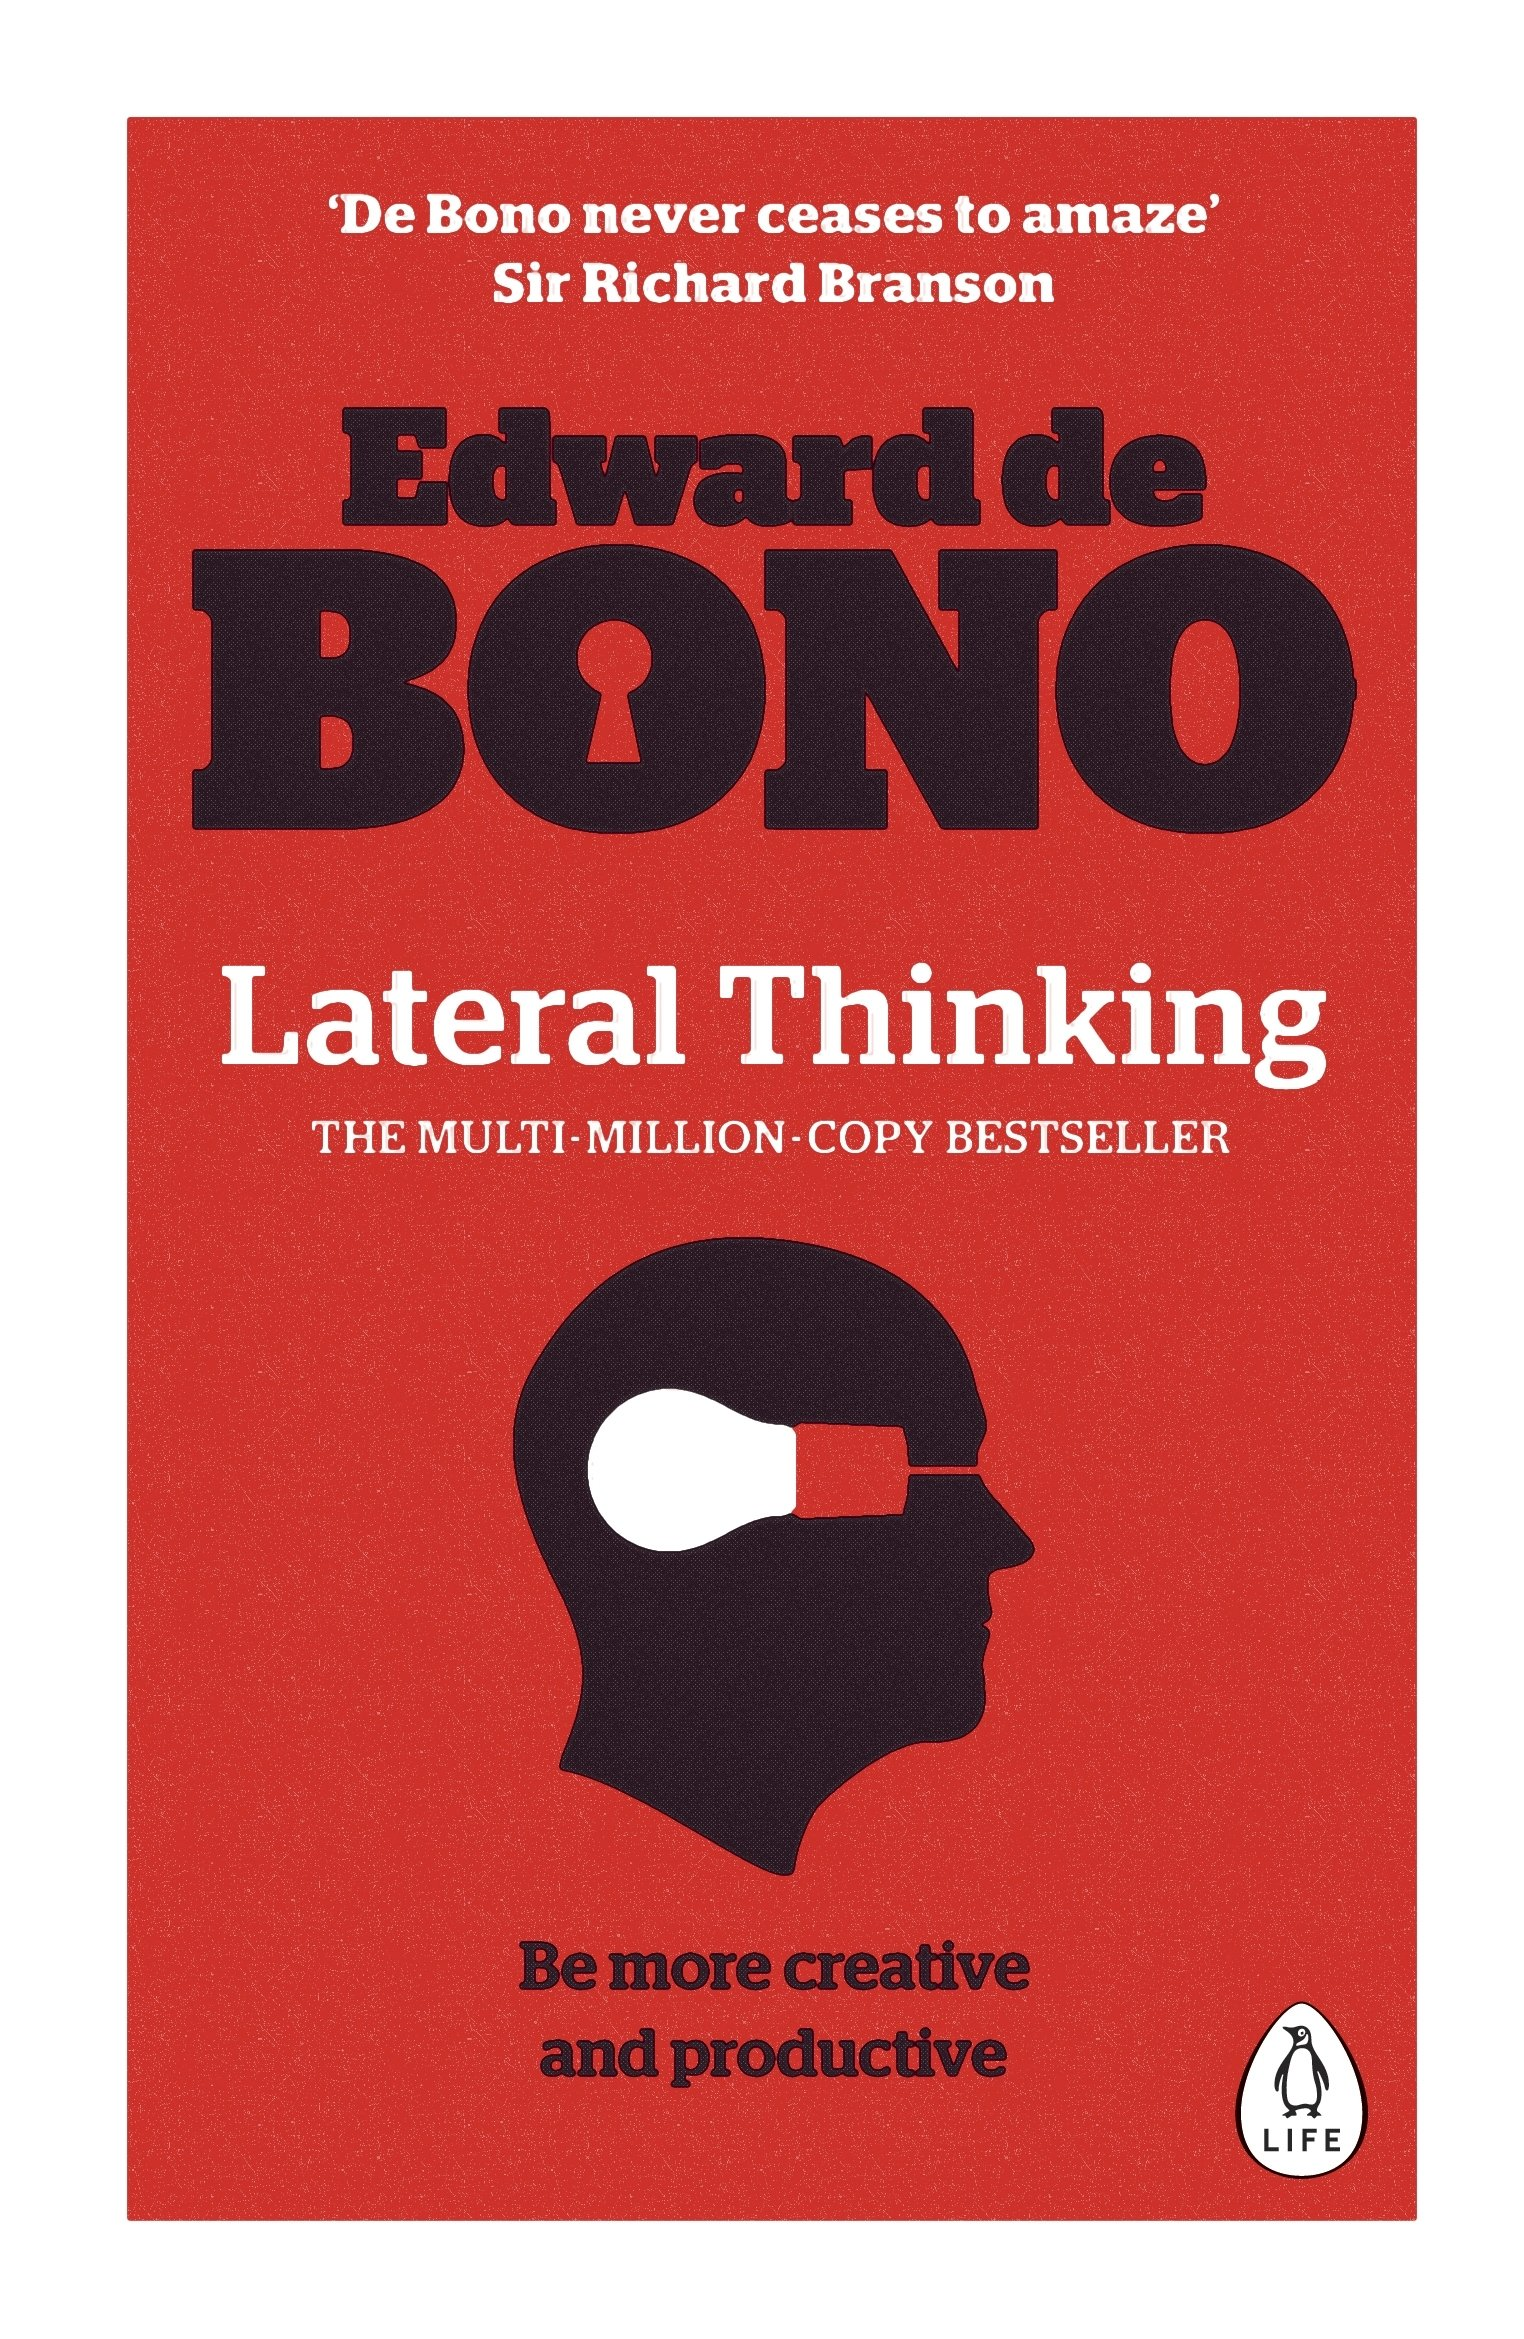 Lateral Thinking : A Textbook of Creativity (Anglais) Broché – 2 mai 2016 Edward De Bono Penguin Life 0241257549 SELF-HELP / Creativity